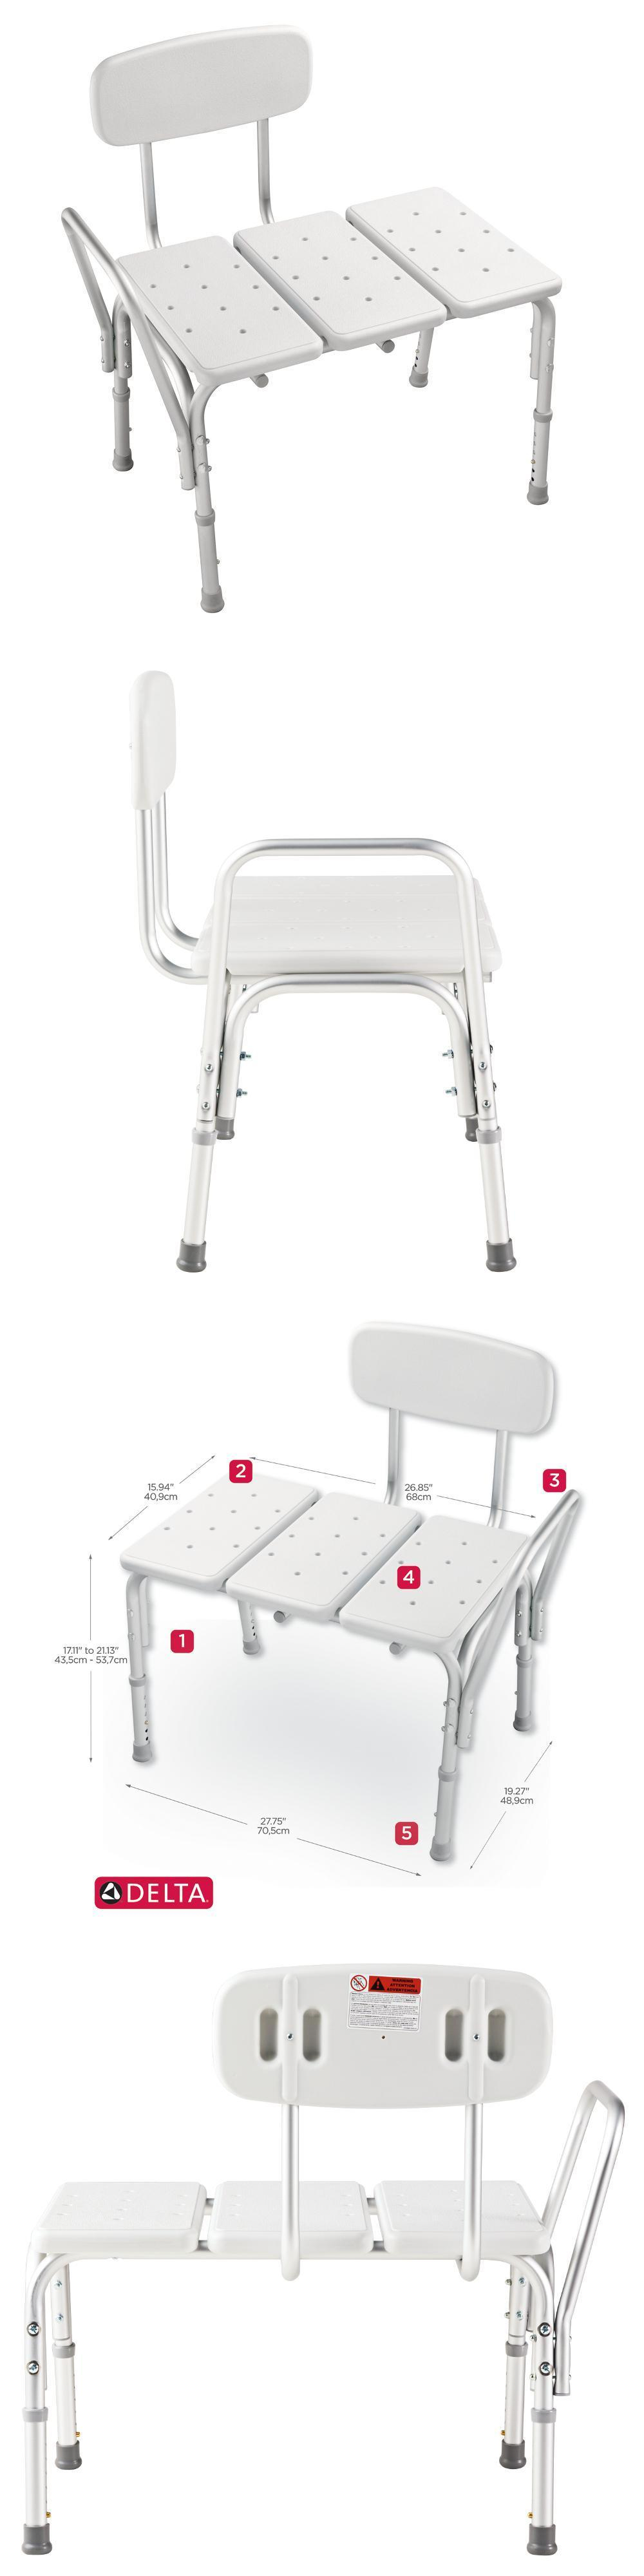 transfer boards and benches shower transfer bench wheelchair to bath tub seat safety stool w